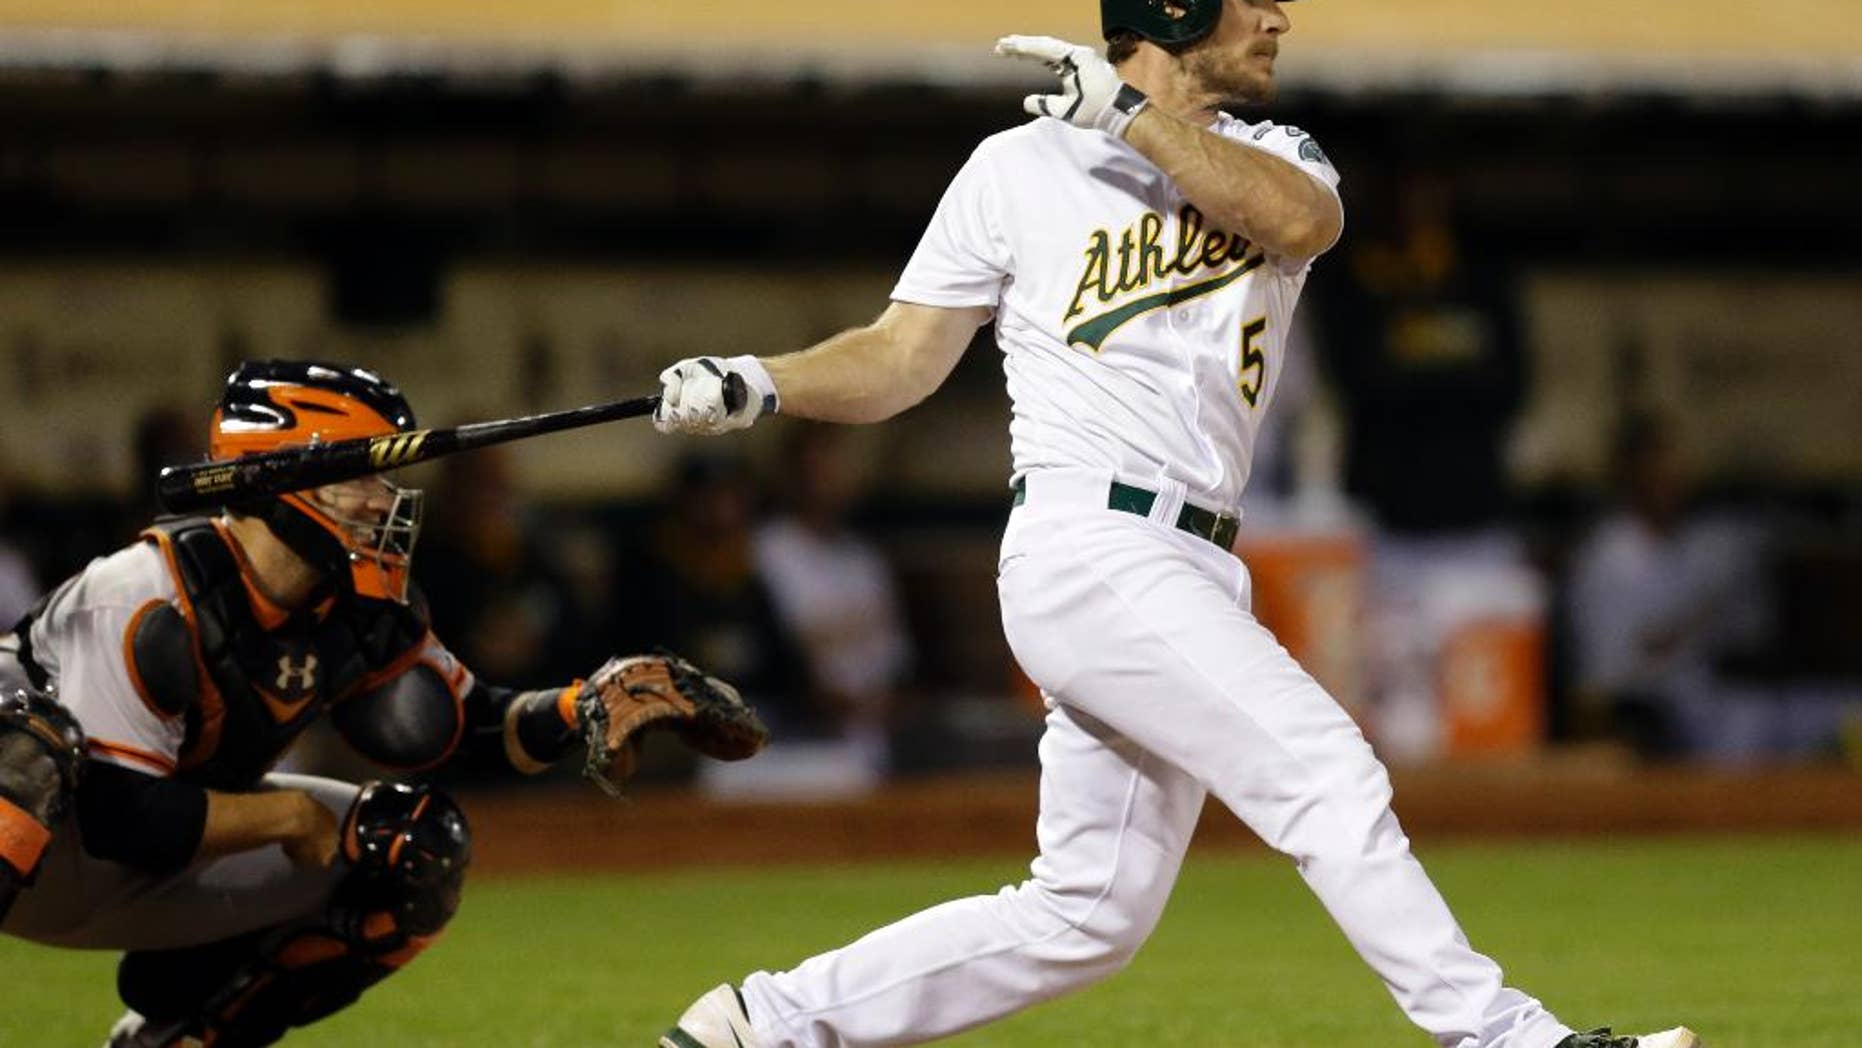 Oakland Athletics' John Jaso swings for an RBI ground out against the San Francisco Giants in the fifth inning of a baseball game Monday, July 7, 2014, in Oakland, Calif. (AP Photo/Ben Margot)